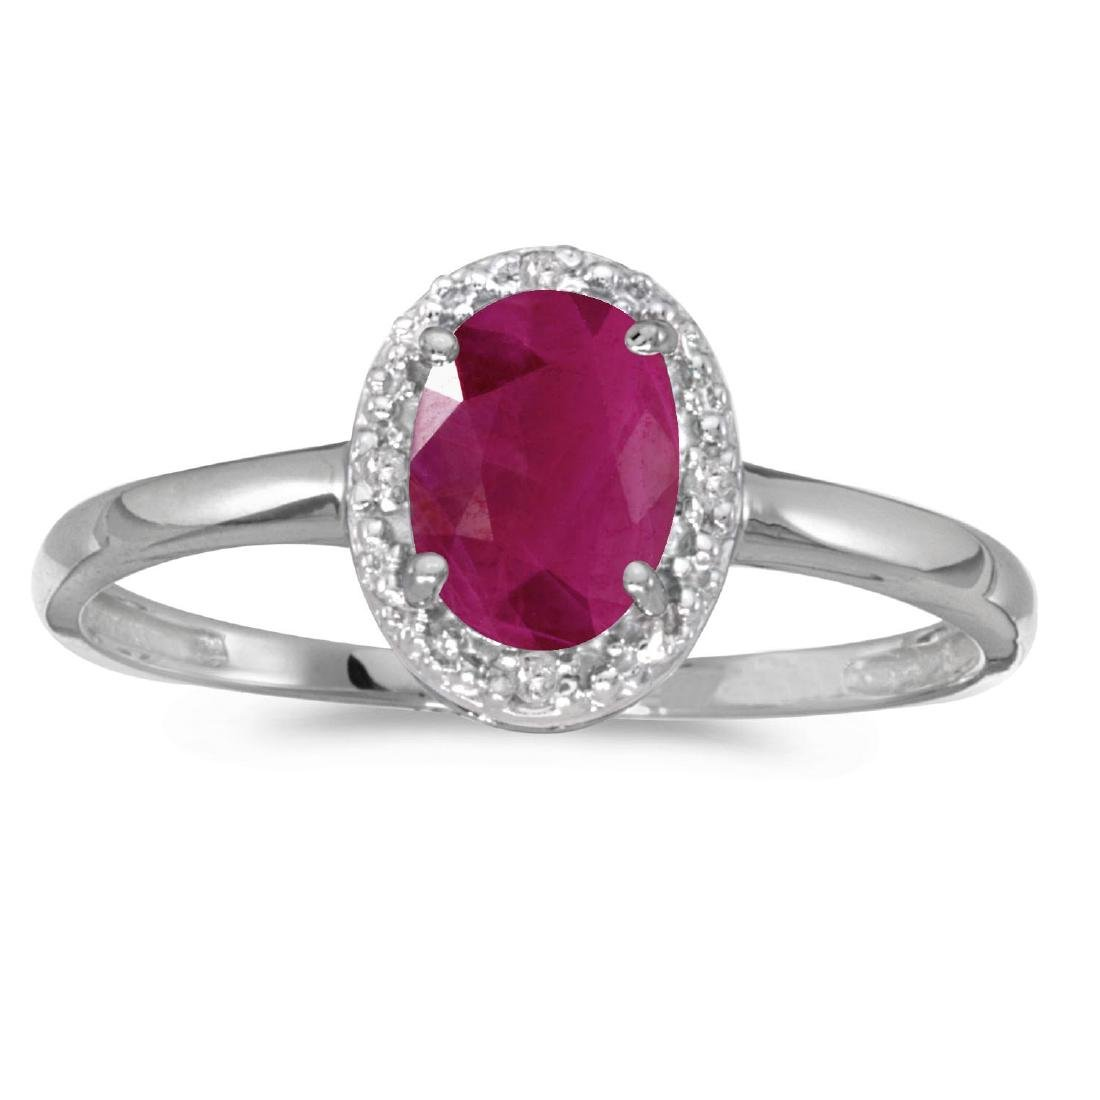 Certified 10k White Gold Oval Ruby And Diamond Ring 0.7